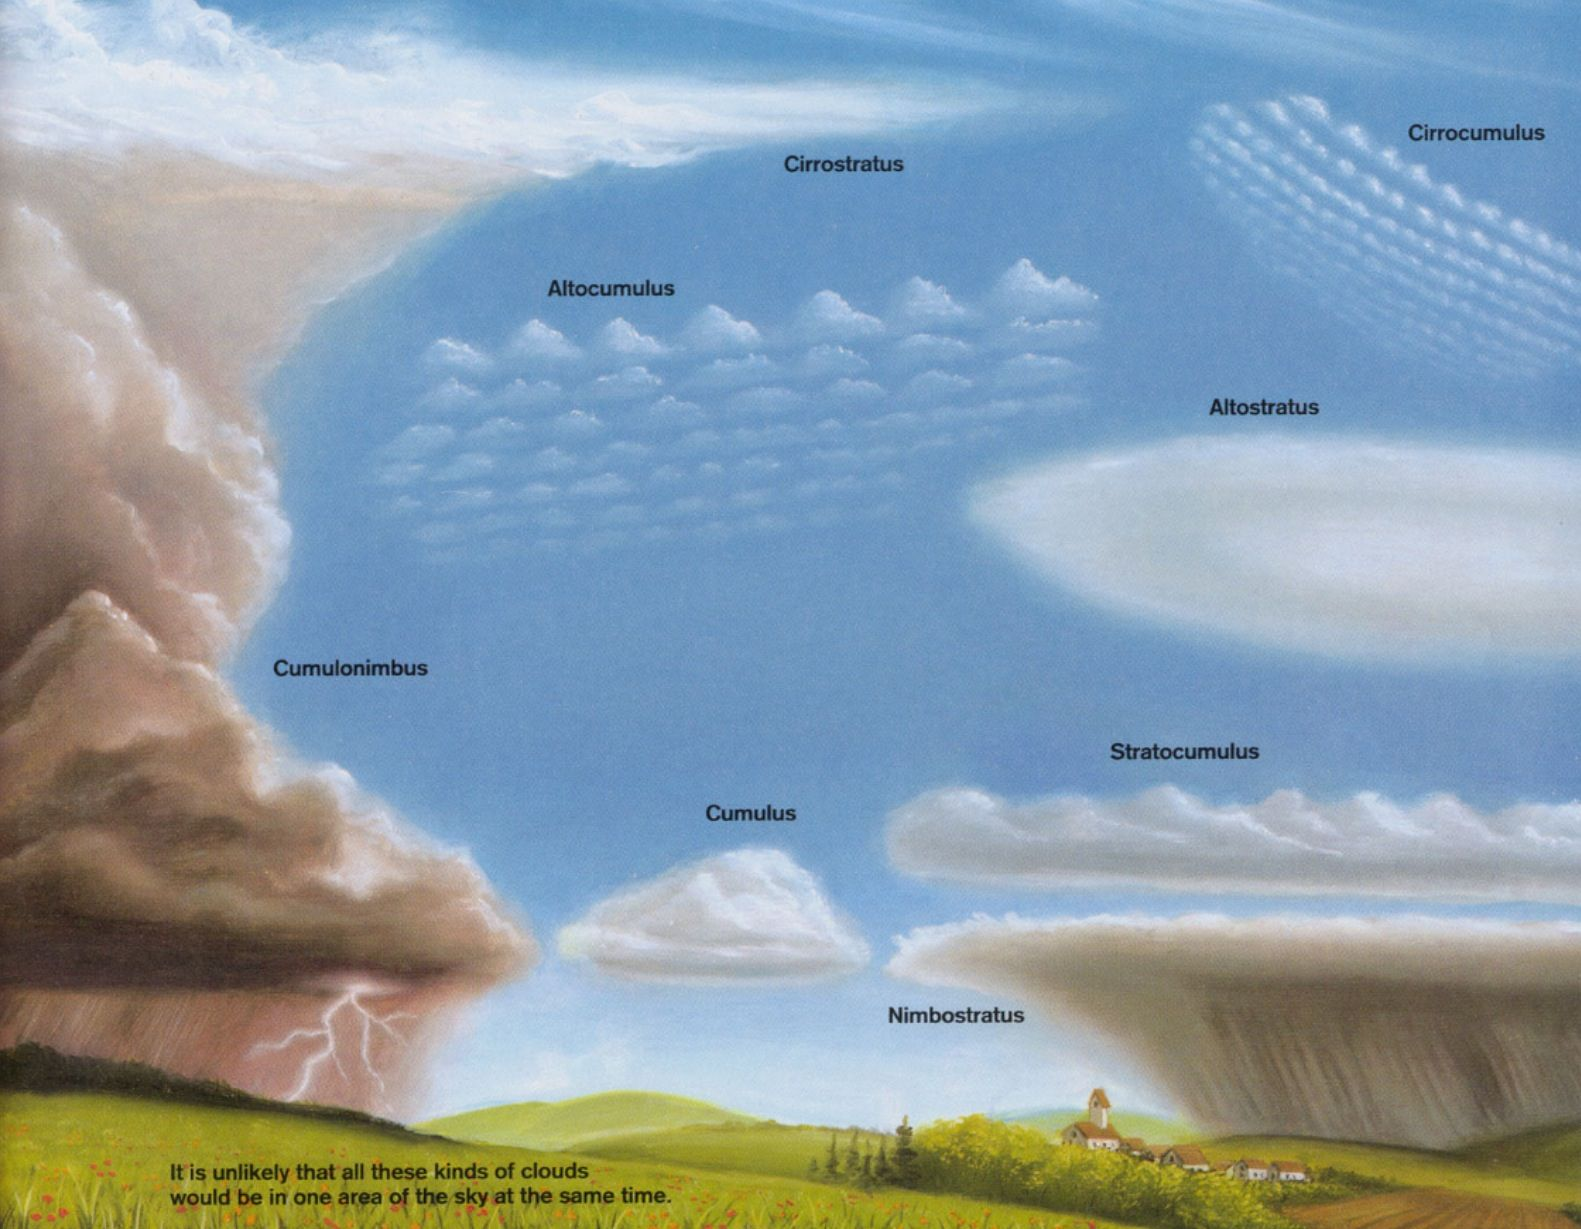 Worksheets Types Of Clouds Worksheet cloud types homeschooling pinterest weather and earth types